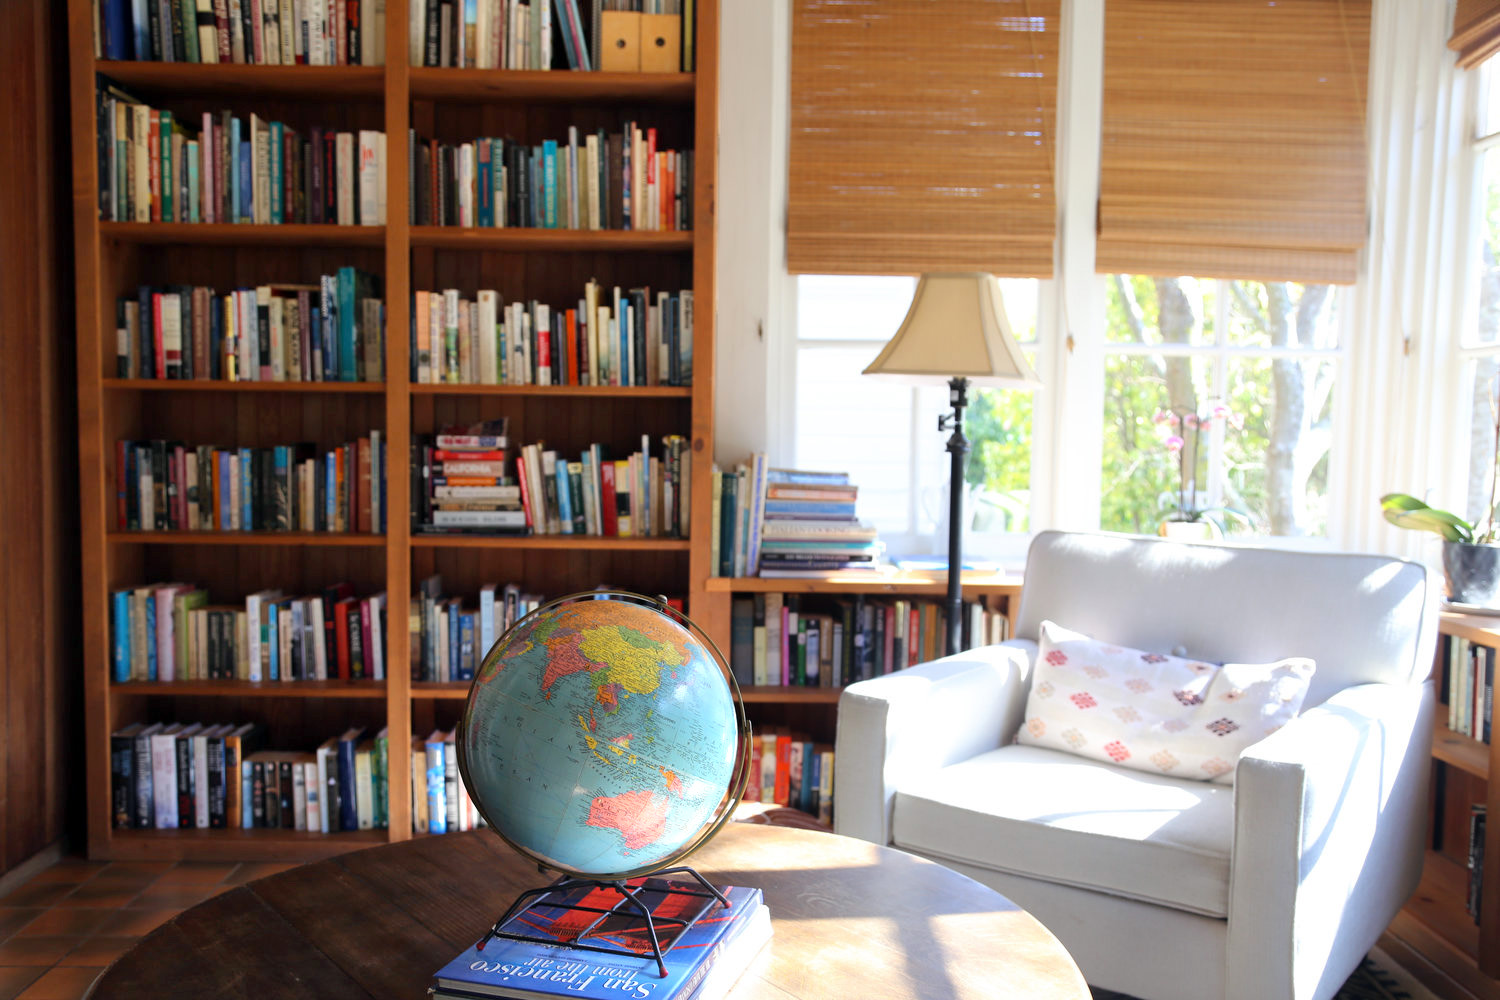 Bookshelves and globe with armchair by brightly lit corner windows